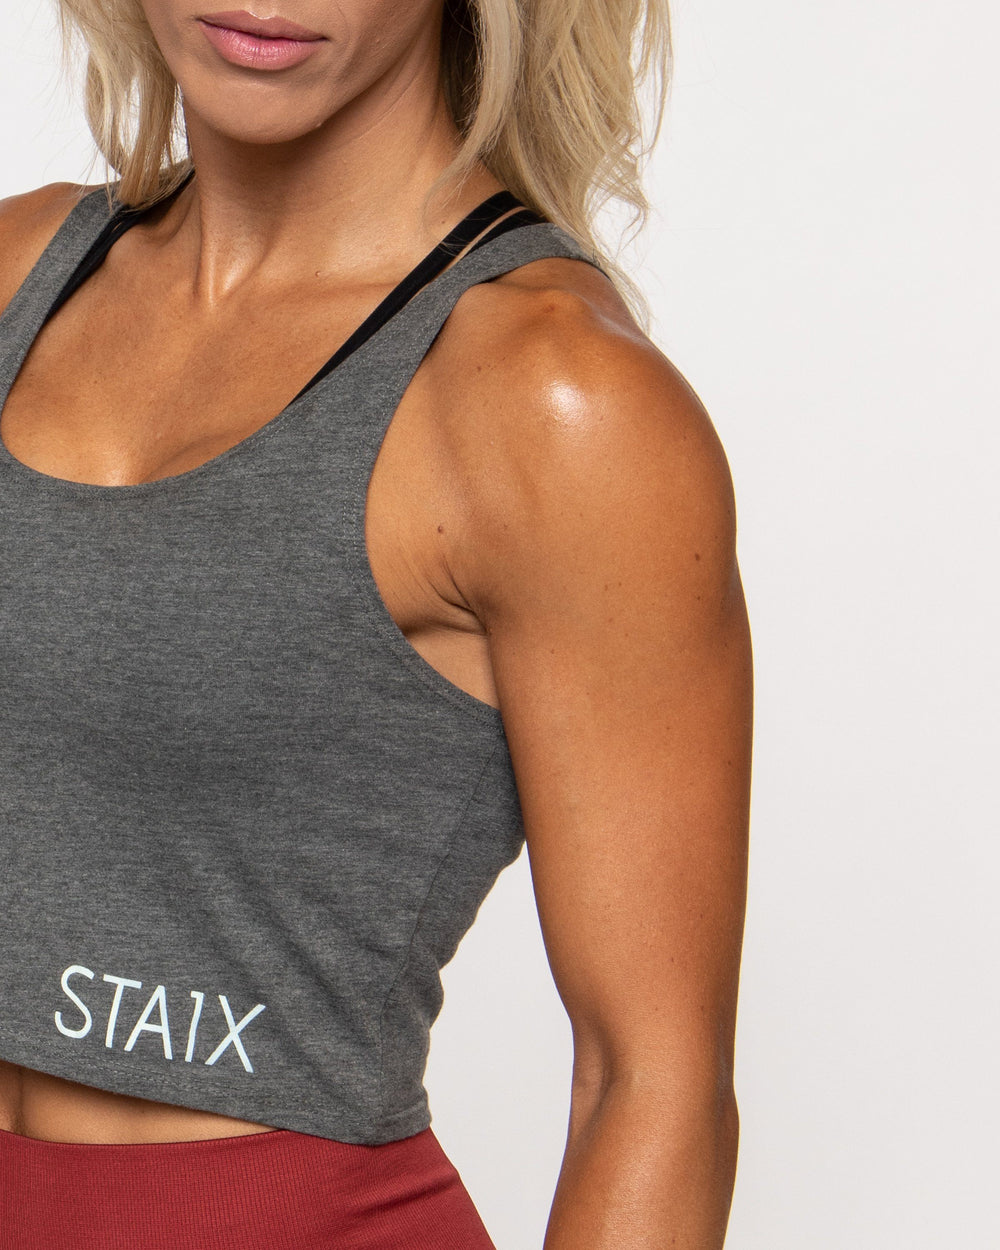 ALL DAY CROP TANK WOMEN'S CROP TOP STAIX